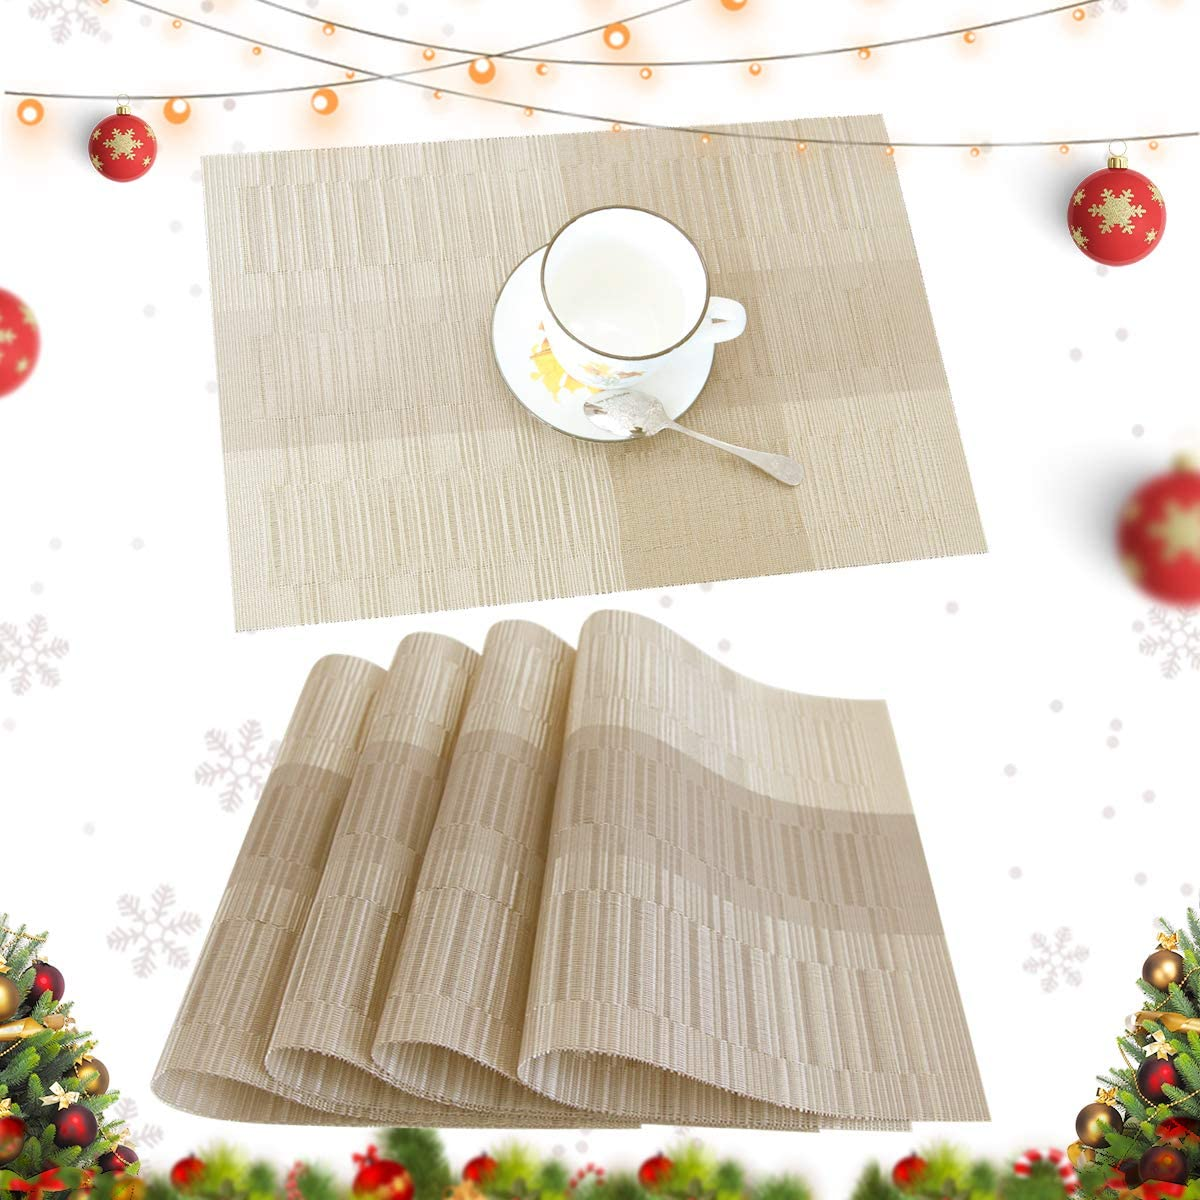 profurni Placemats for Dining Table Heat Resistant Kitchen Table Mats Set of 4 Washable PVC Place Mats Stain Resistant Non-Slip Placemat for Hotel Office,Khaki Gold